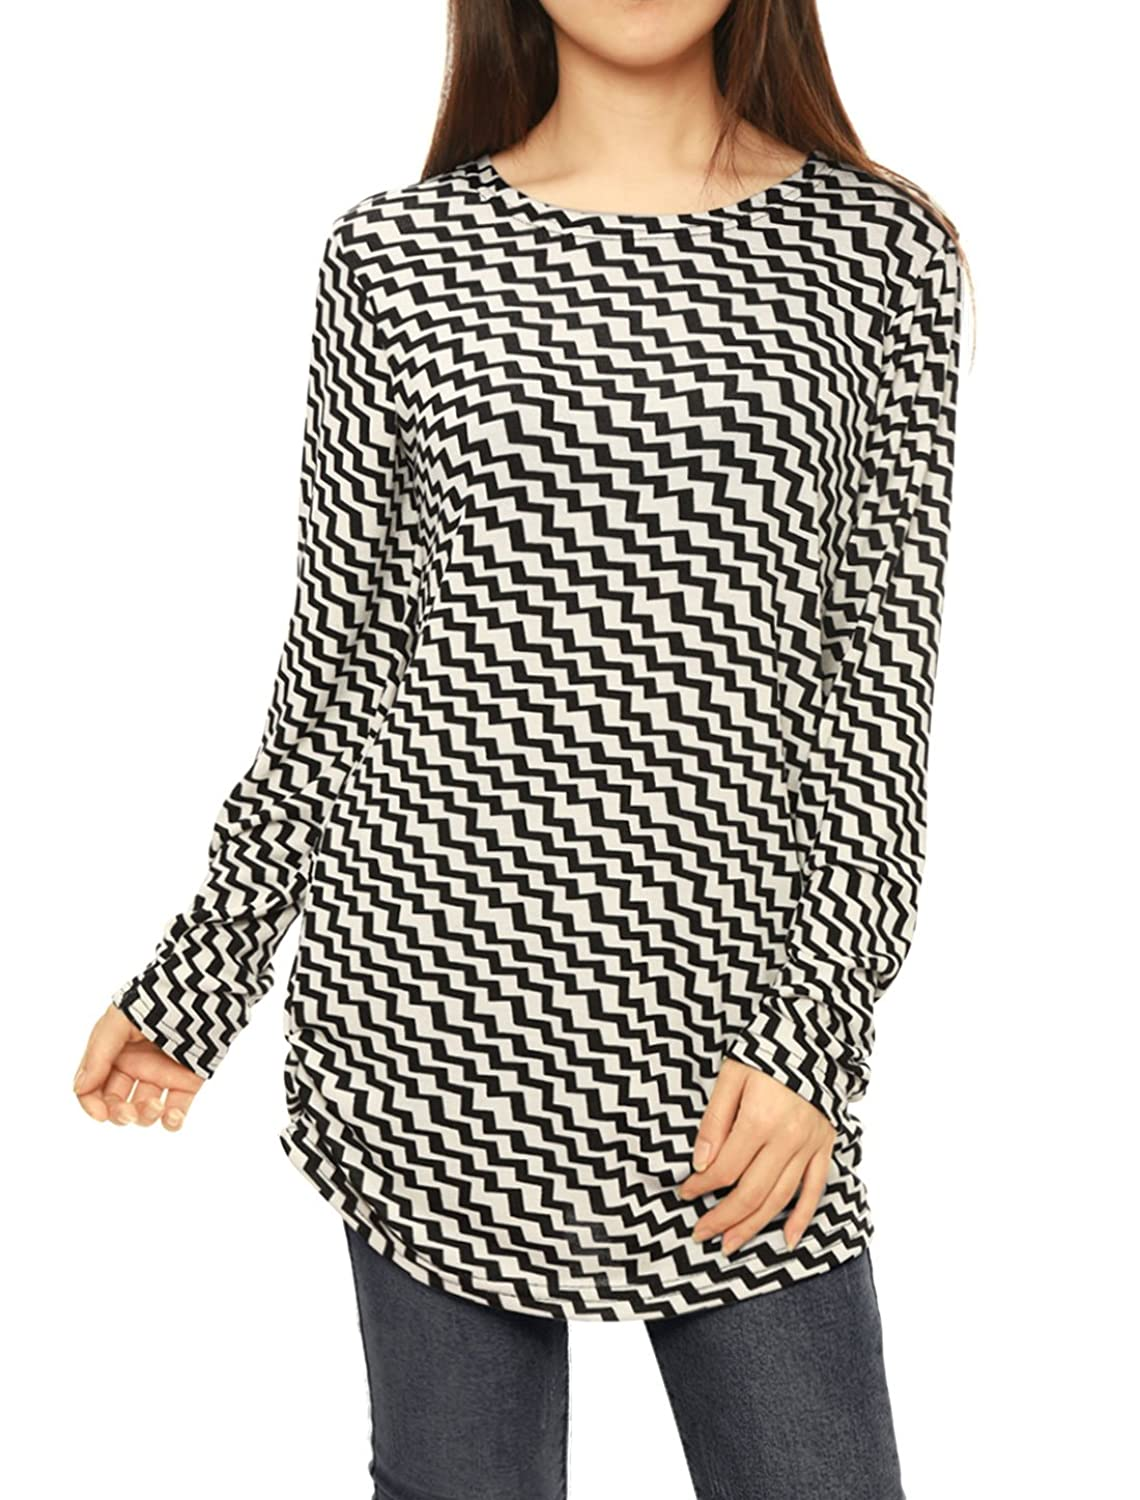 Allegra K Lady Manches Longues Col Rond Lettre Motif Pull-over Chemise Tricot